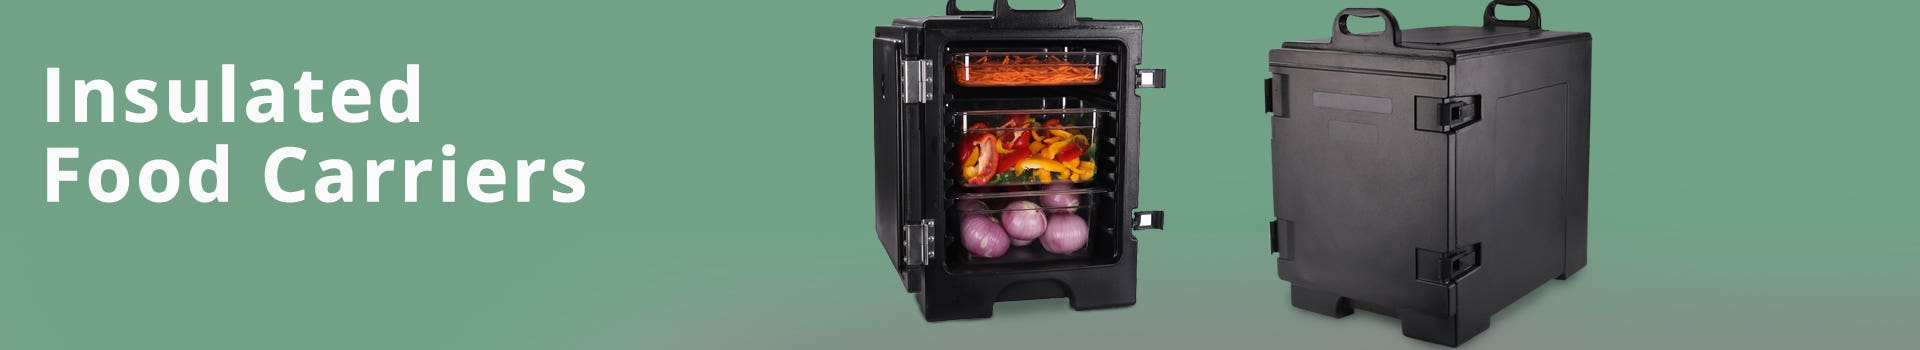 Insulated Food Carriers